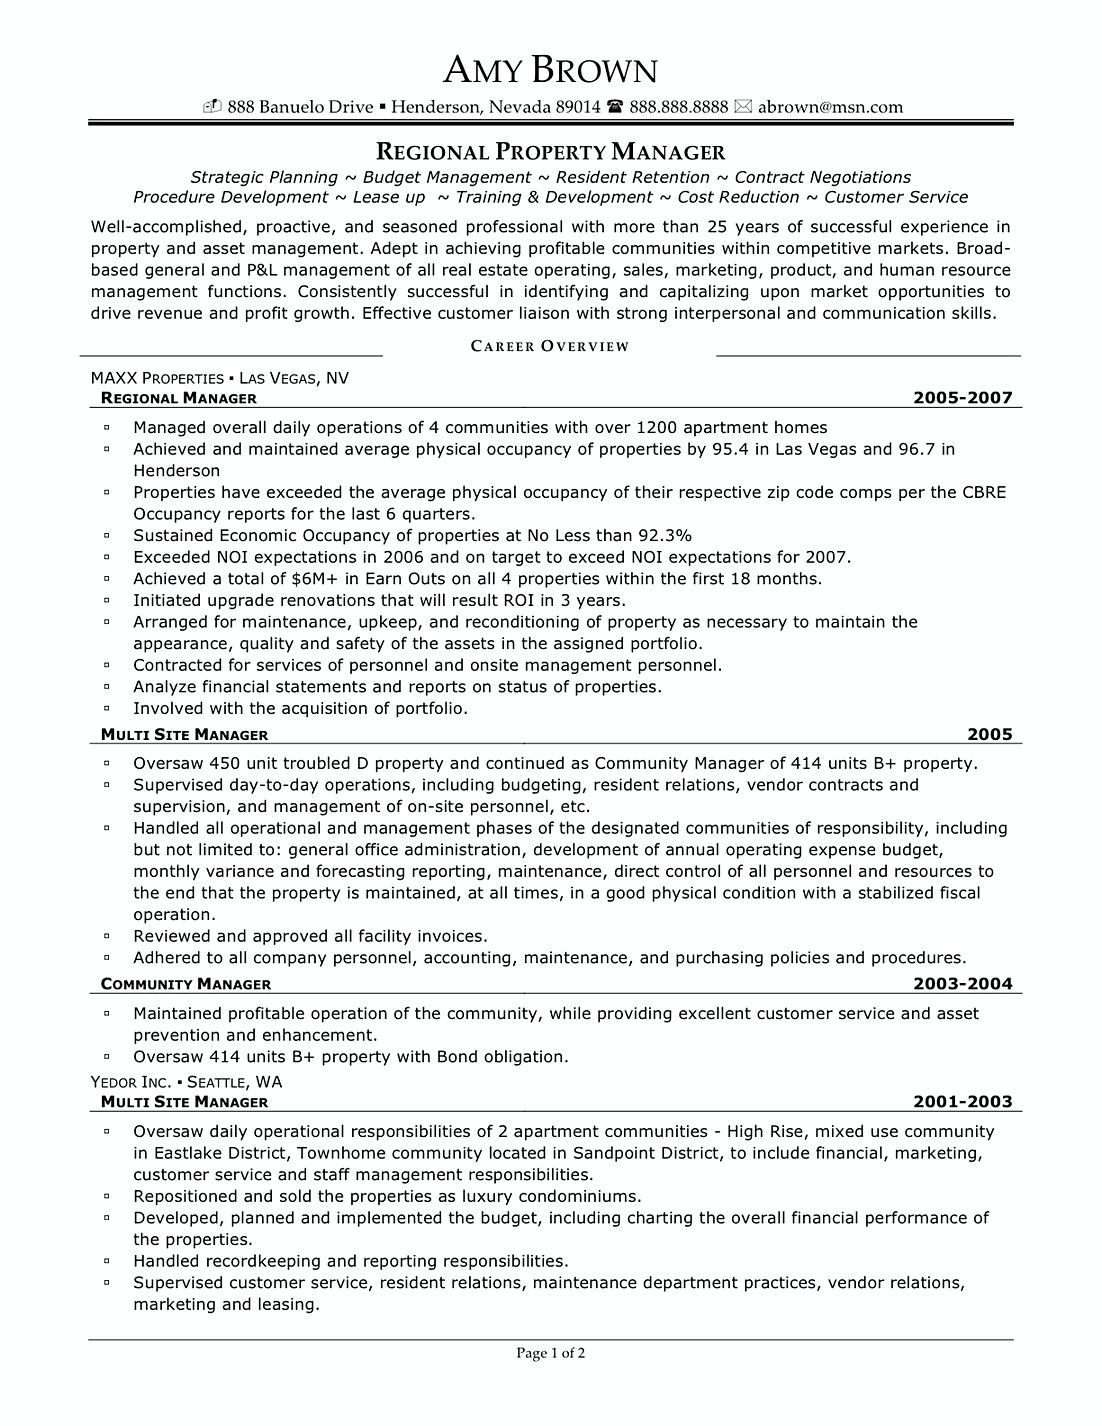 regional property manager resume samples commercial interested in working pro examples Resume Property Manager Resume Examples